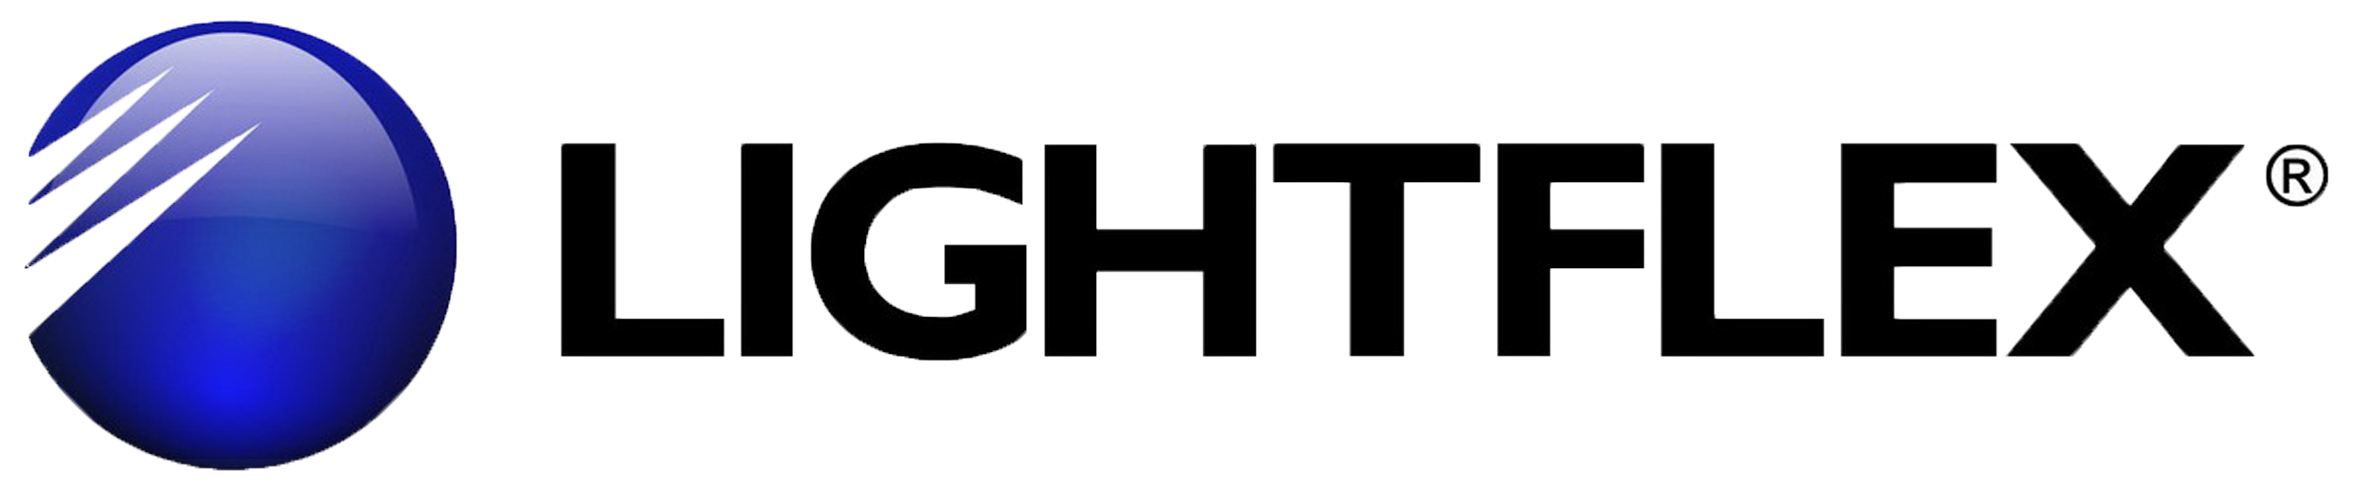 lightflex-full-logo